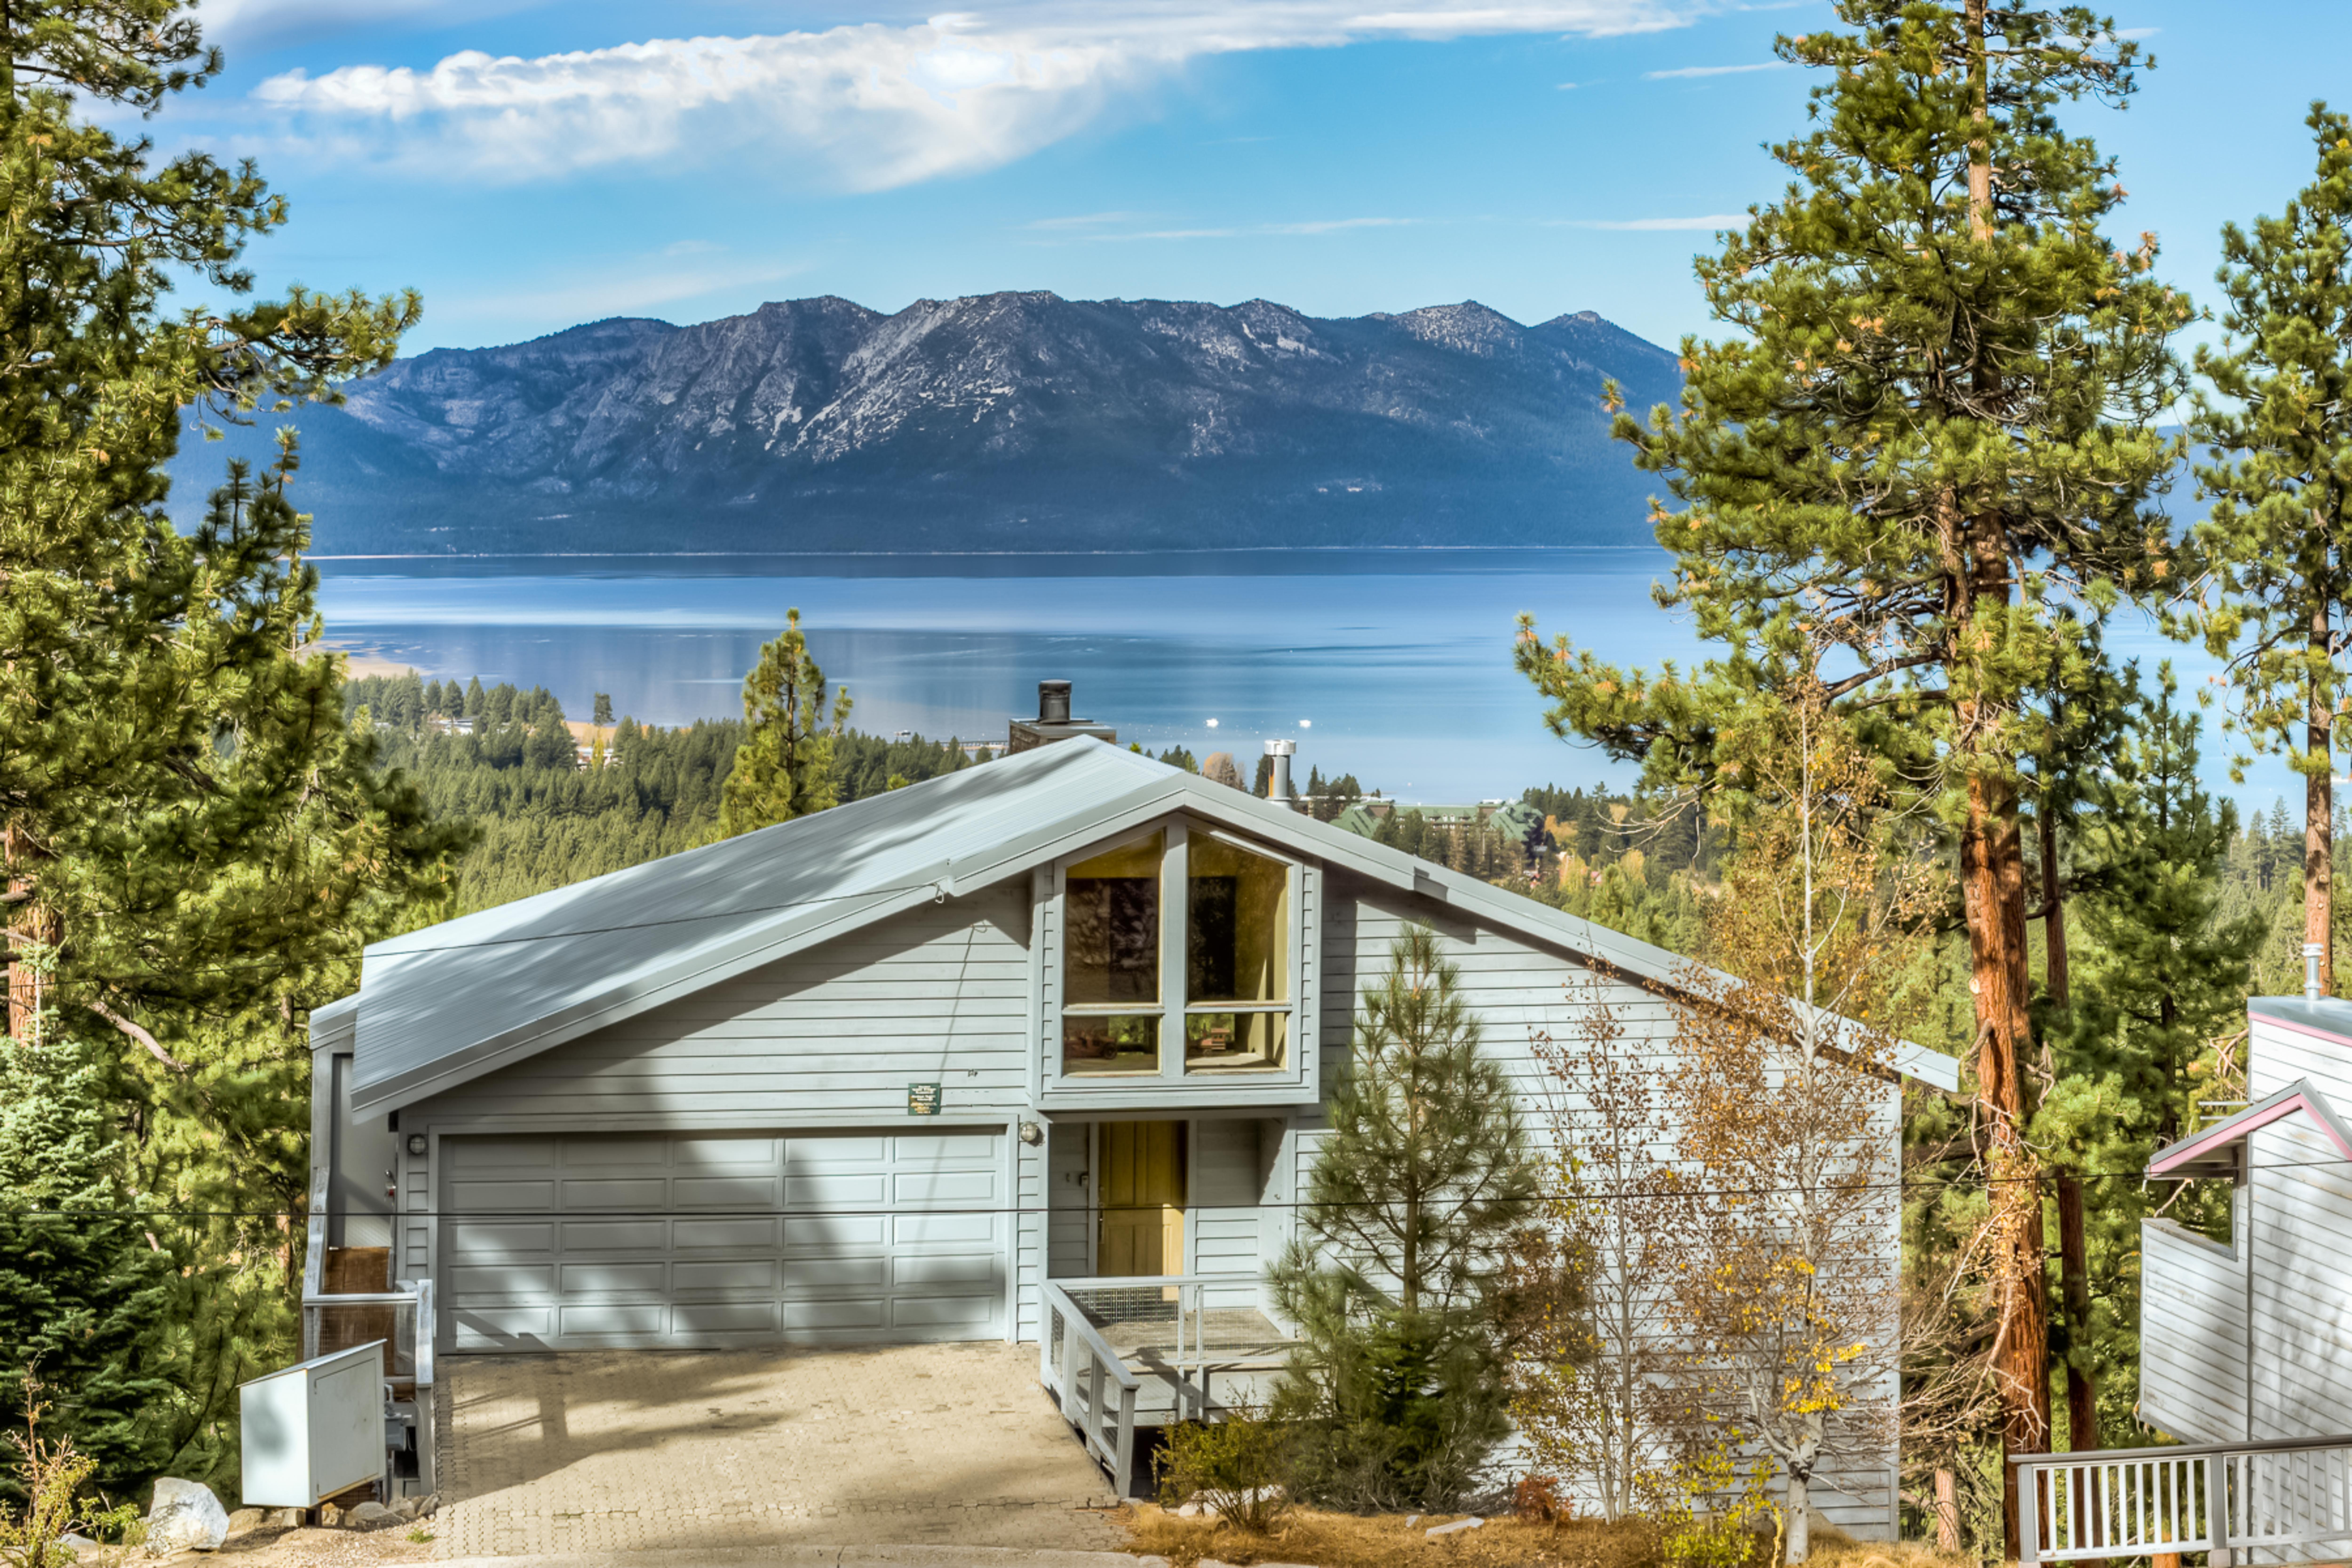 South Lake Tahoe CA Vacation Rental Welcome to Panorama